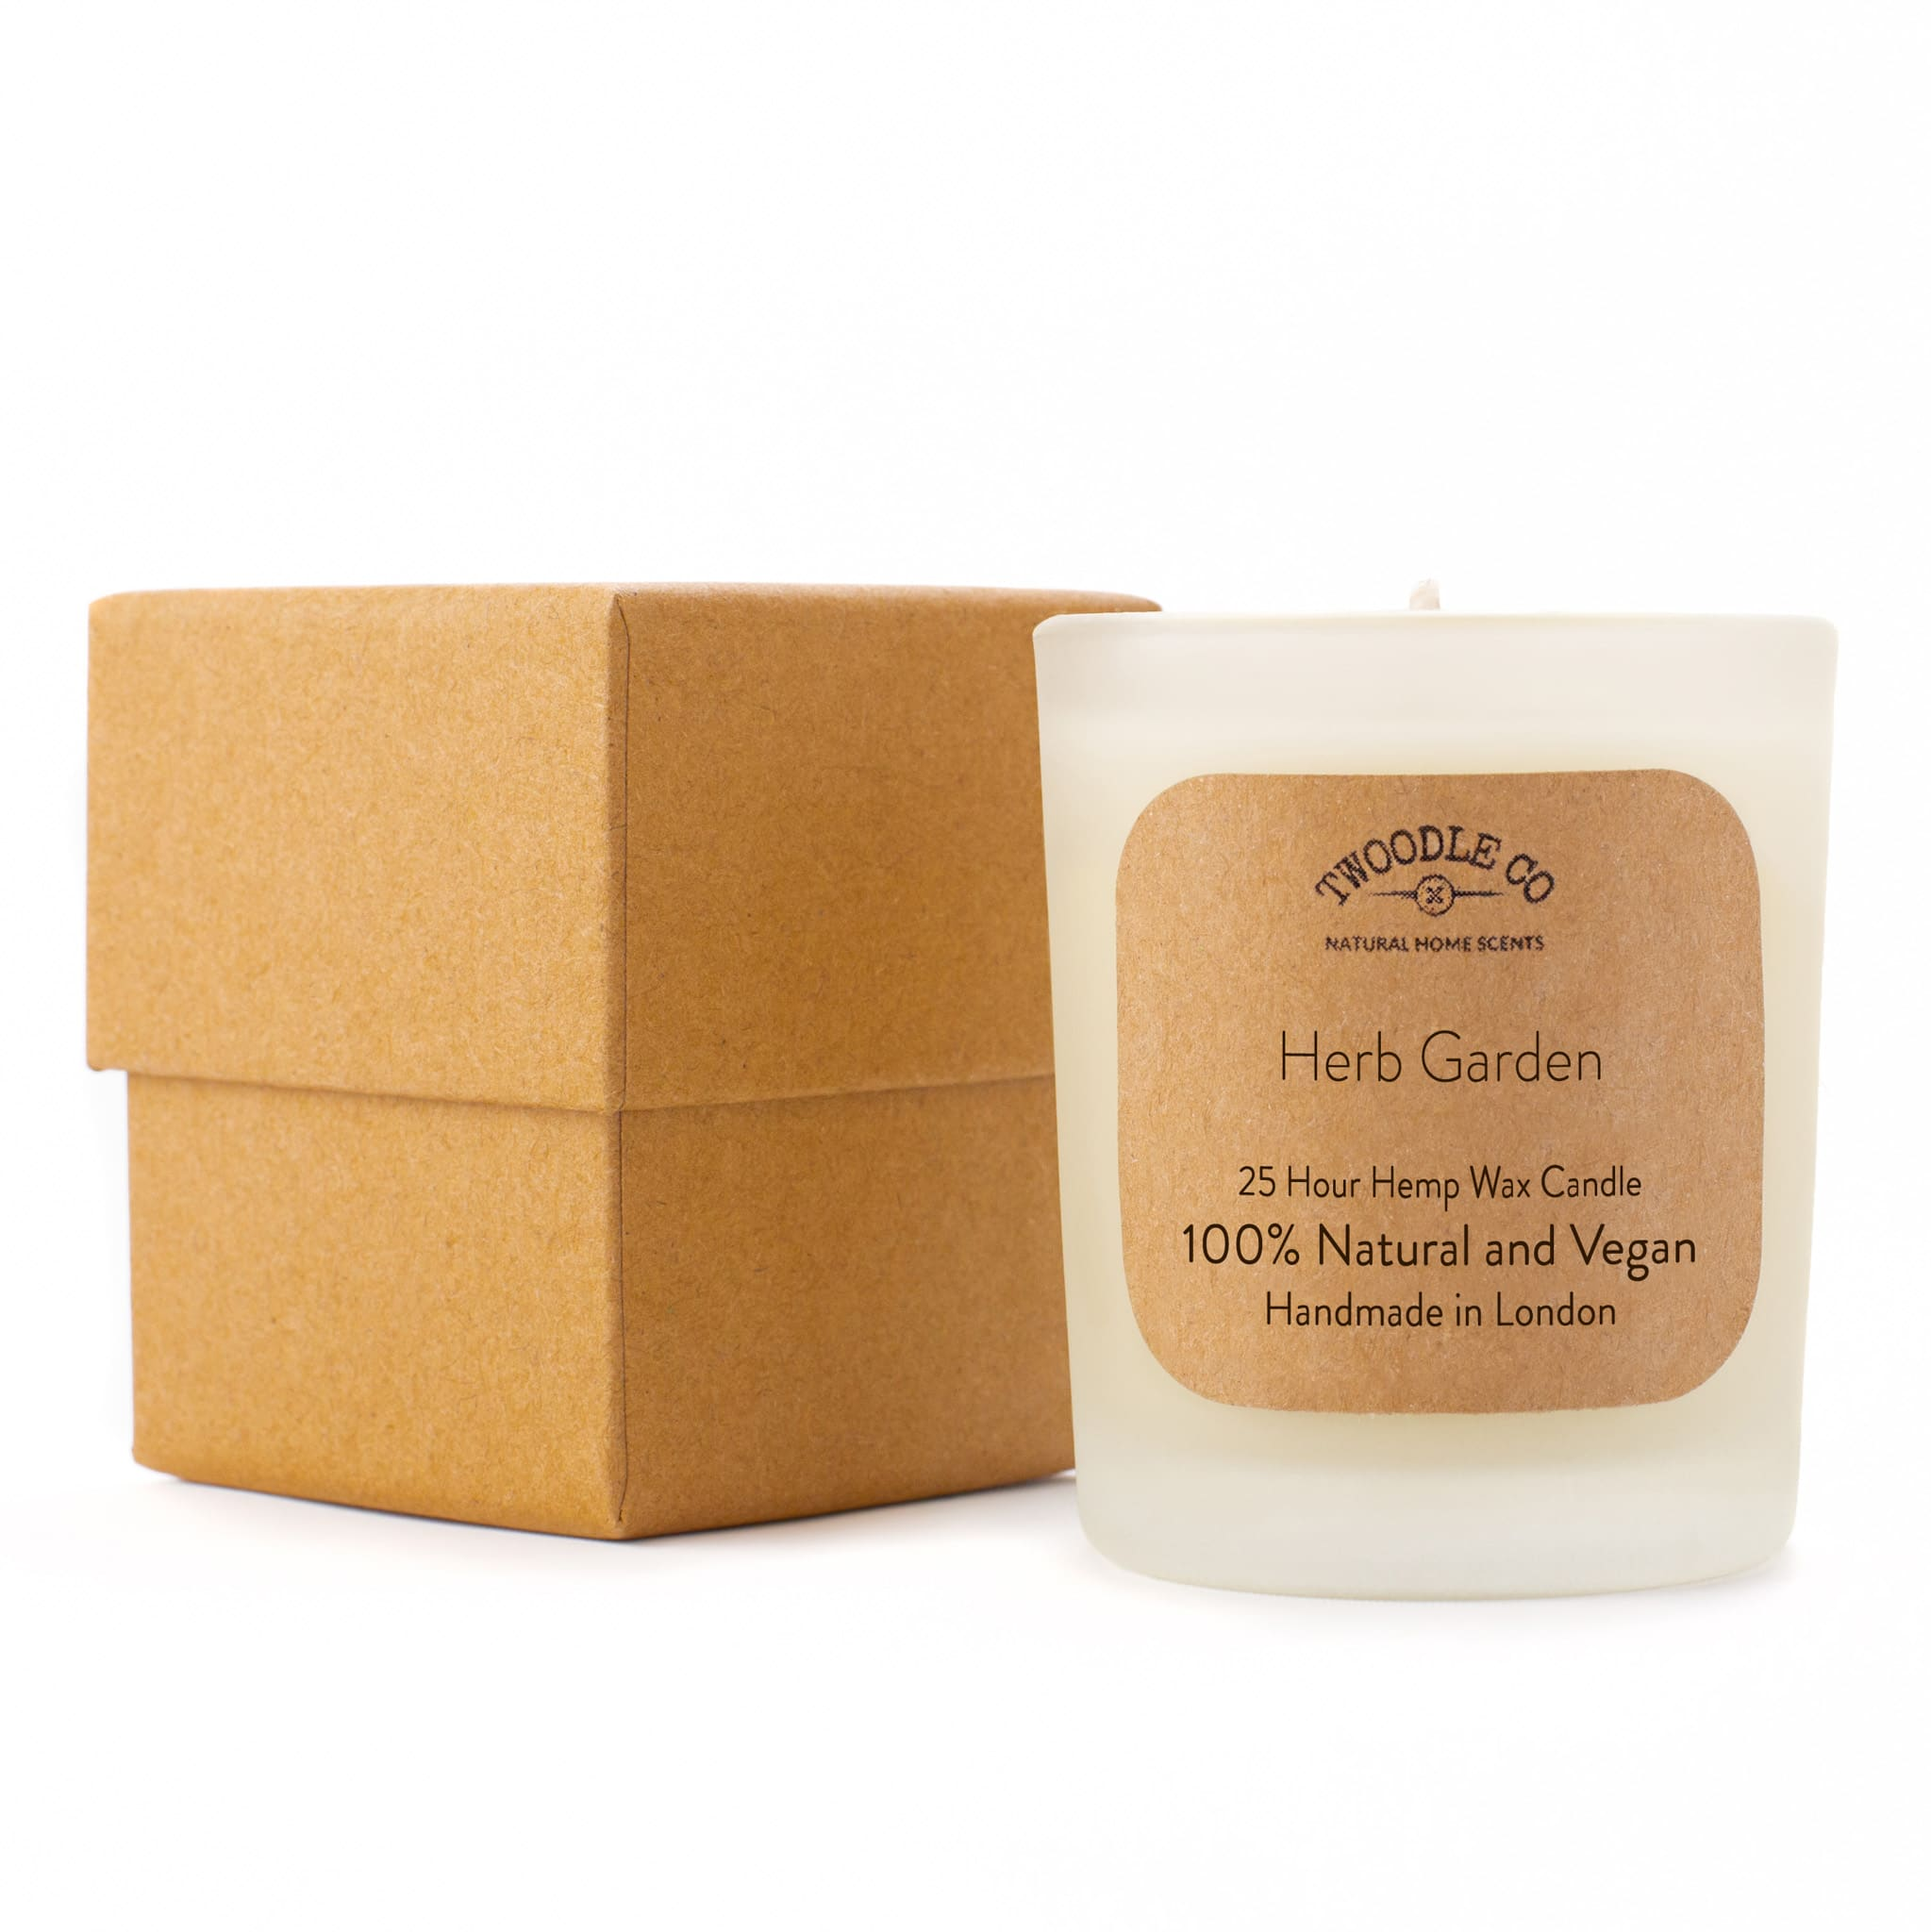 Herb Garden Small Scented Hemp Wax Christmas candle by Twoodle Co Natural Home Scents